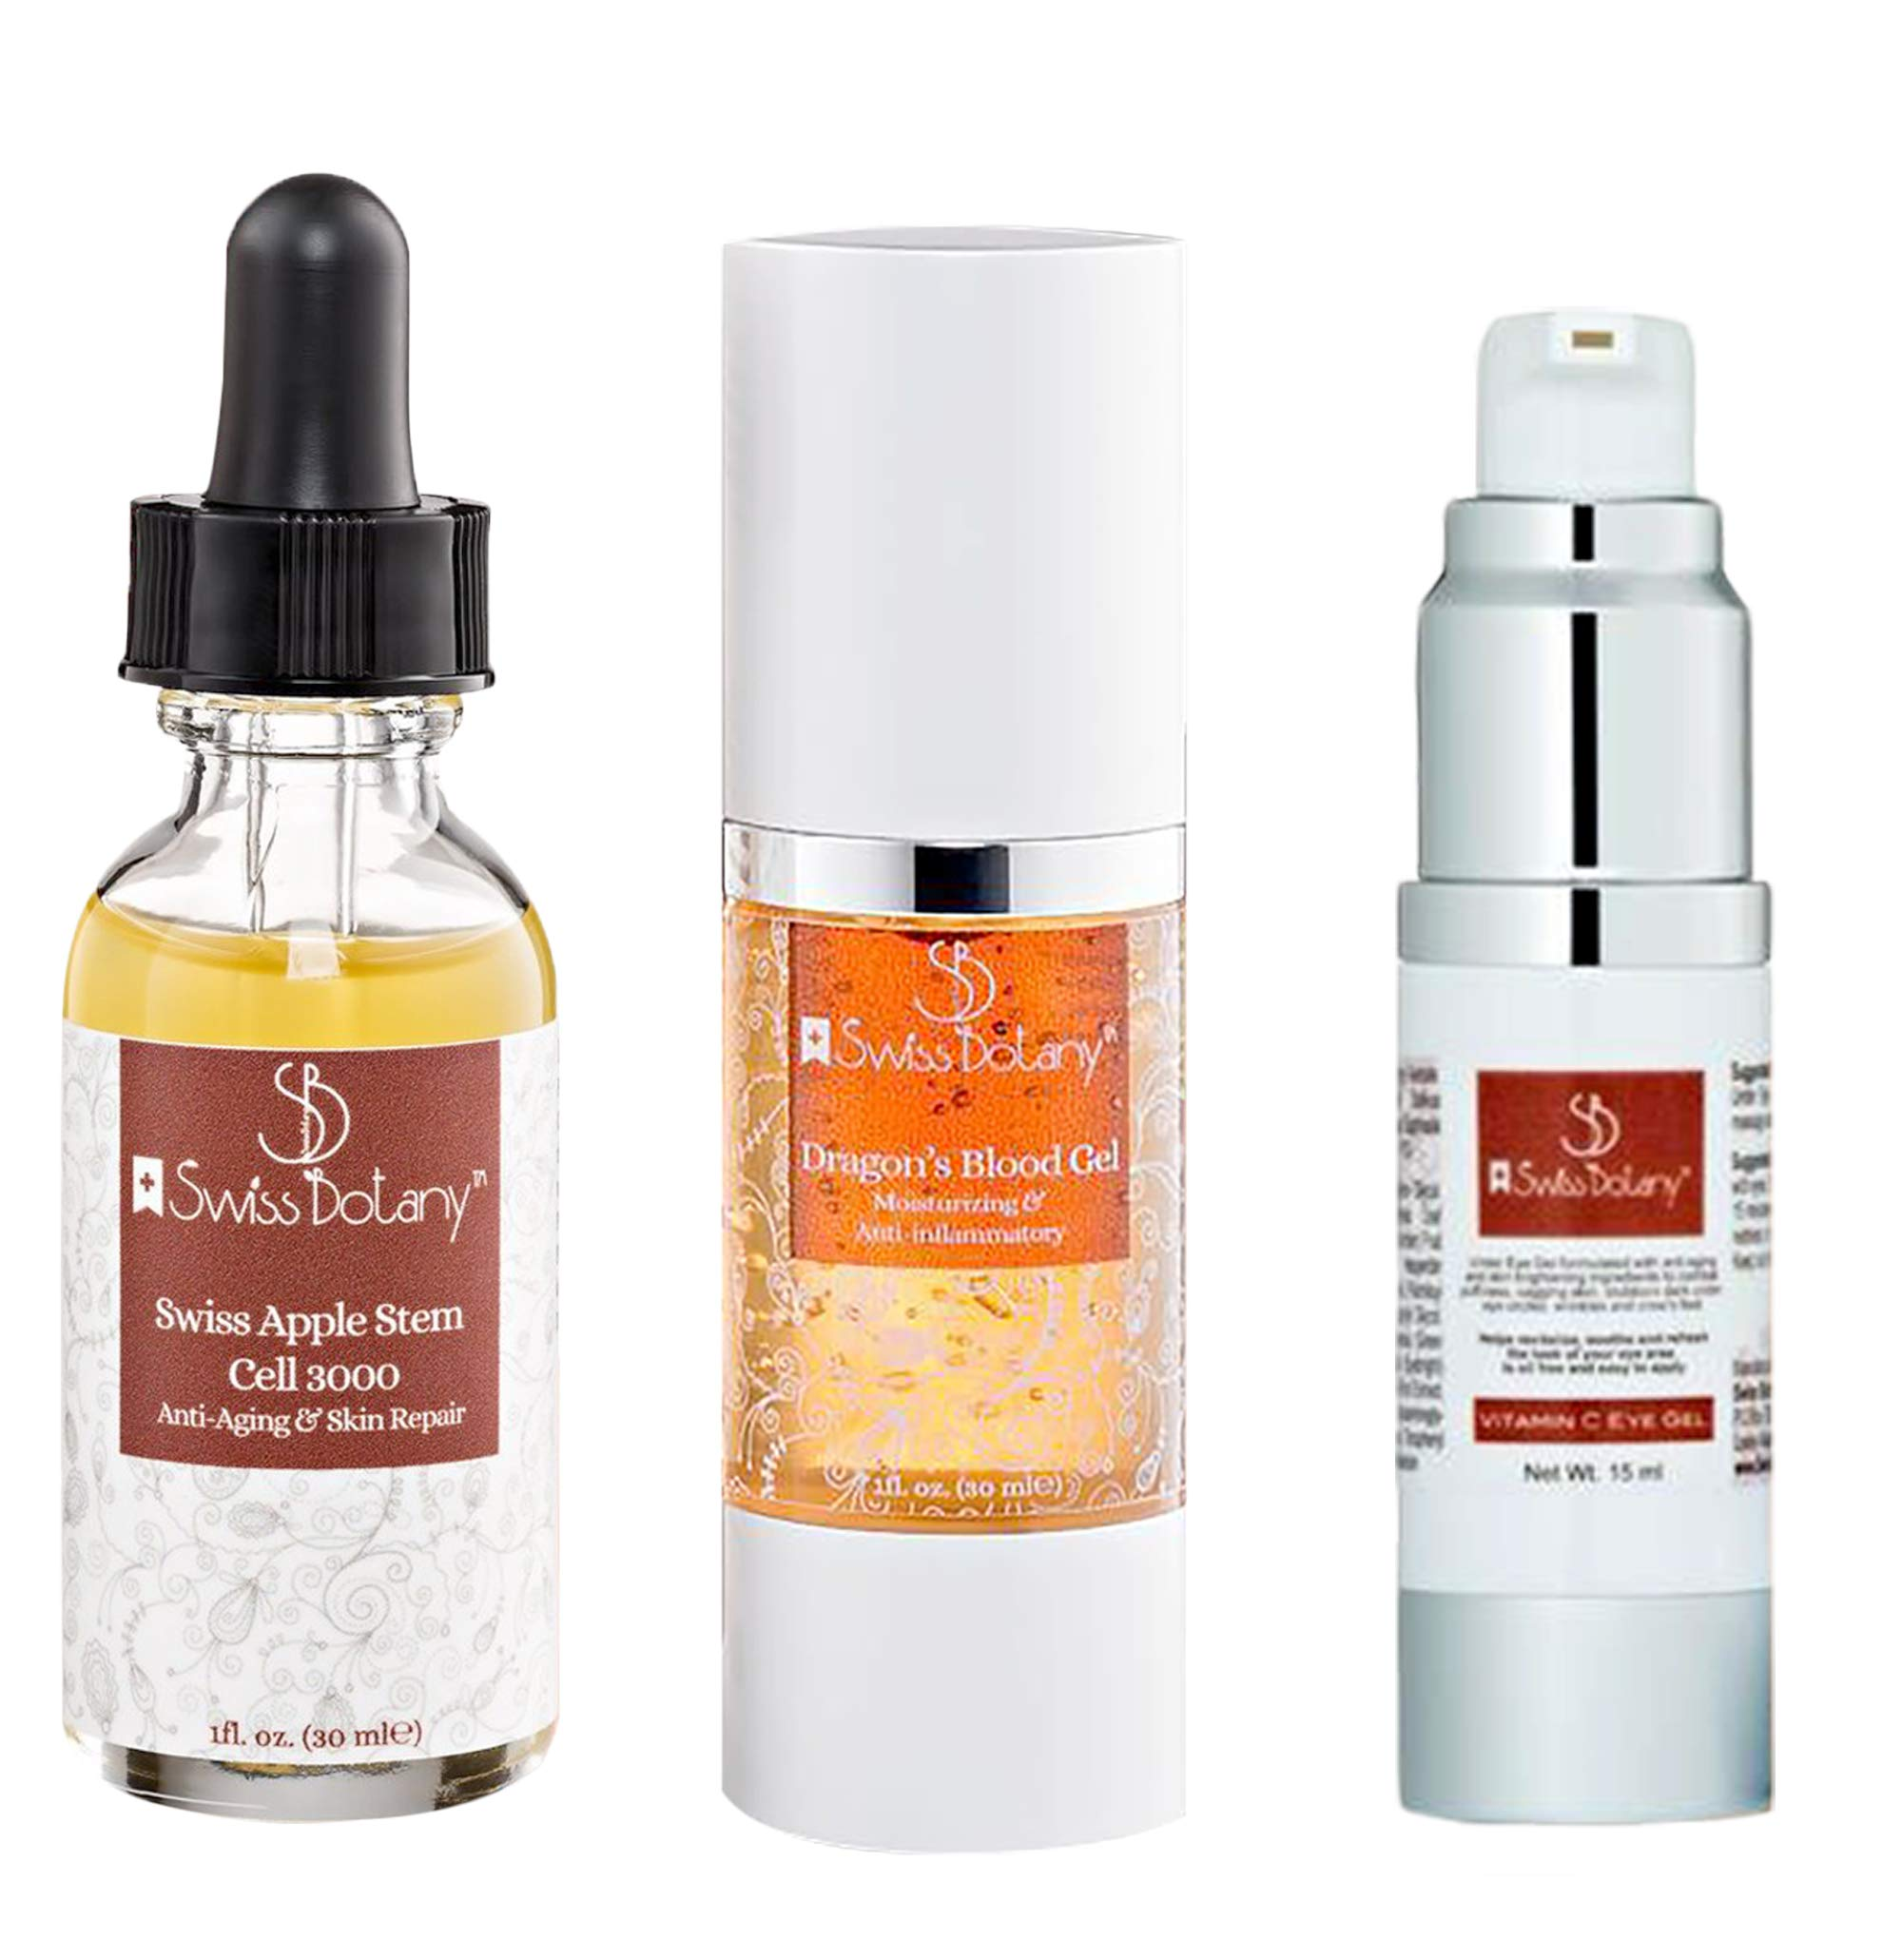 Dragons Blood 3 in 1 Eye Wrinkle Treatment - Nature's Botox Alternative, Instantly Tighten & Sculpture Facial contours - eye wrinkle serum - vitamin c complex by Swiss Botany